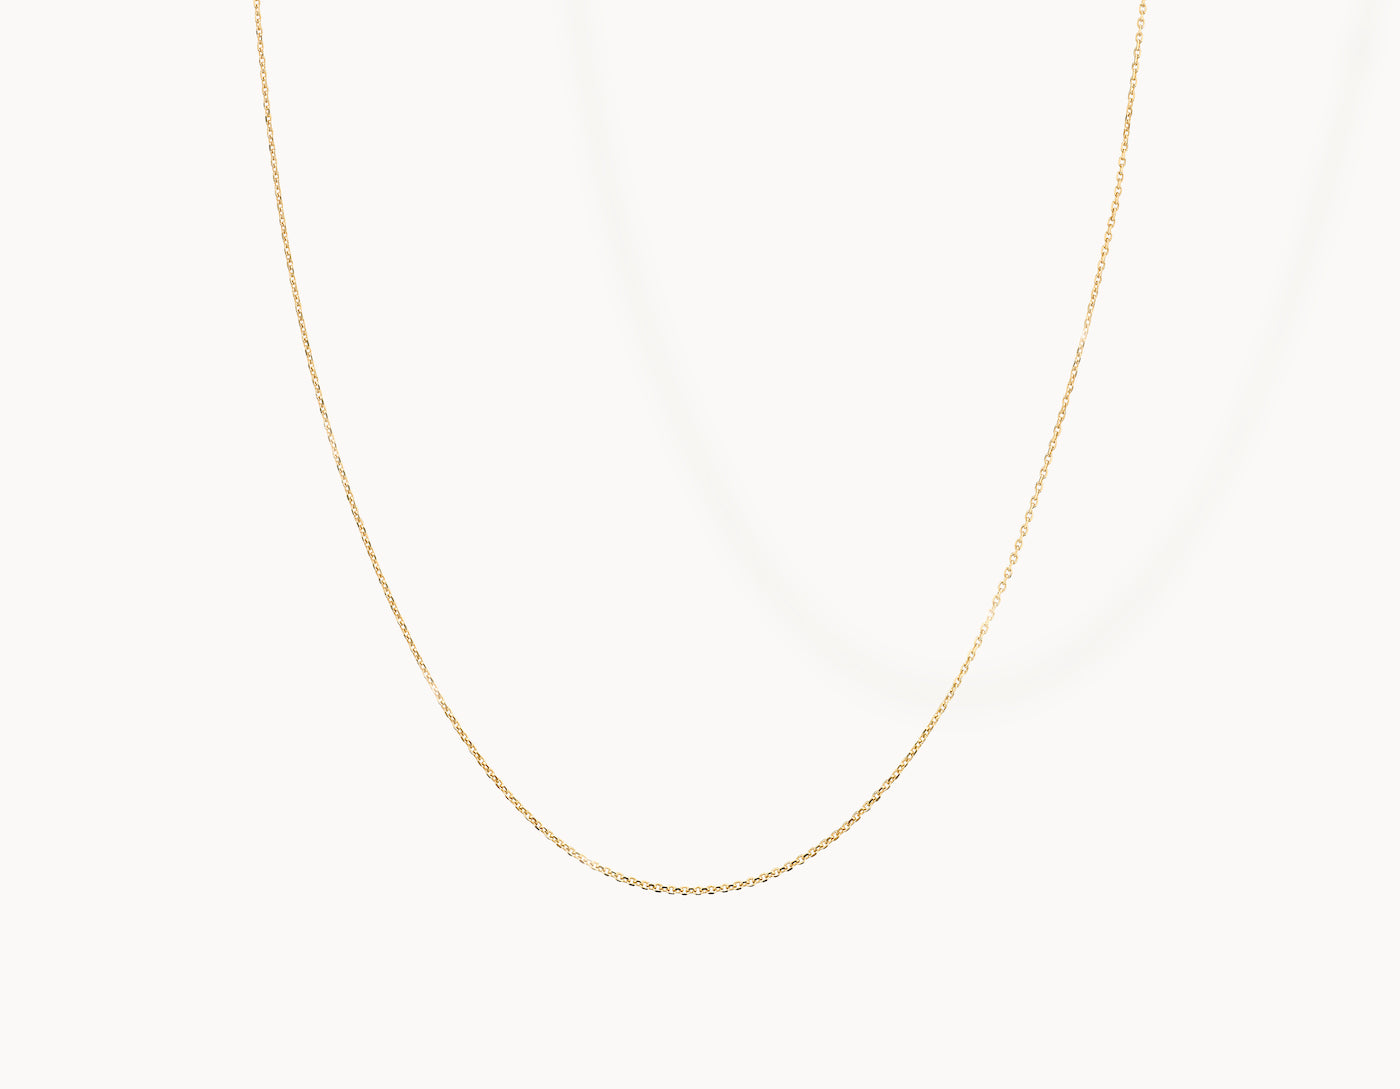 Delicate simple diamond cut Shimmer Chain Necklace by Vrai, 14K Yellow Gold